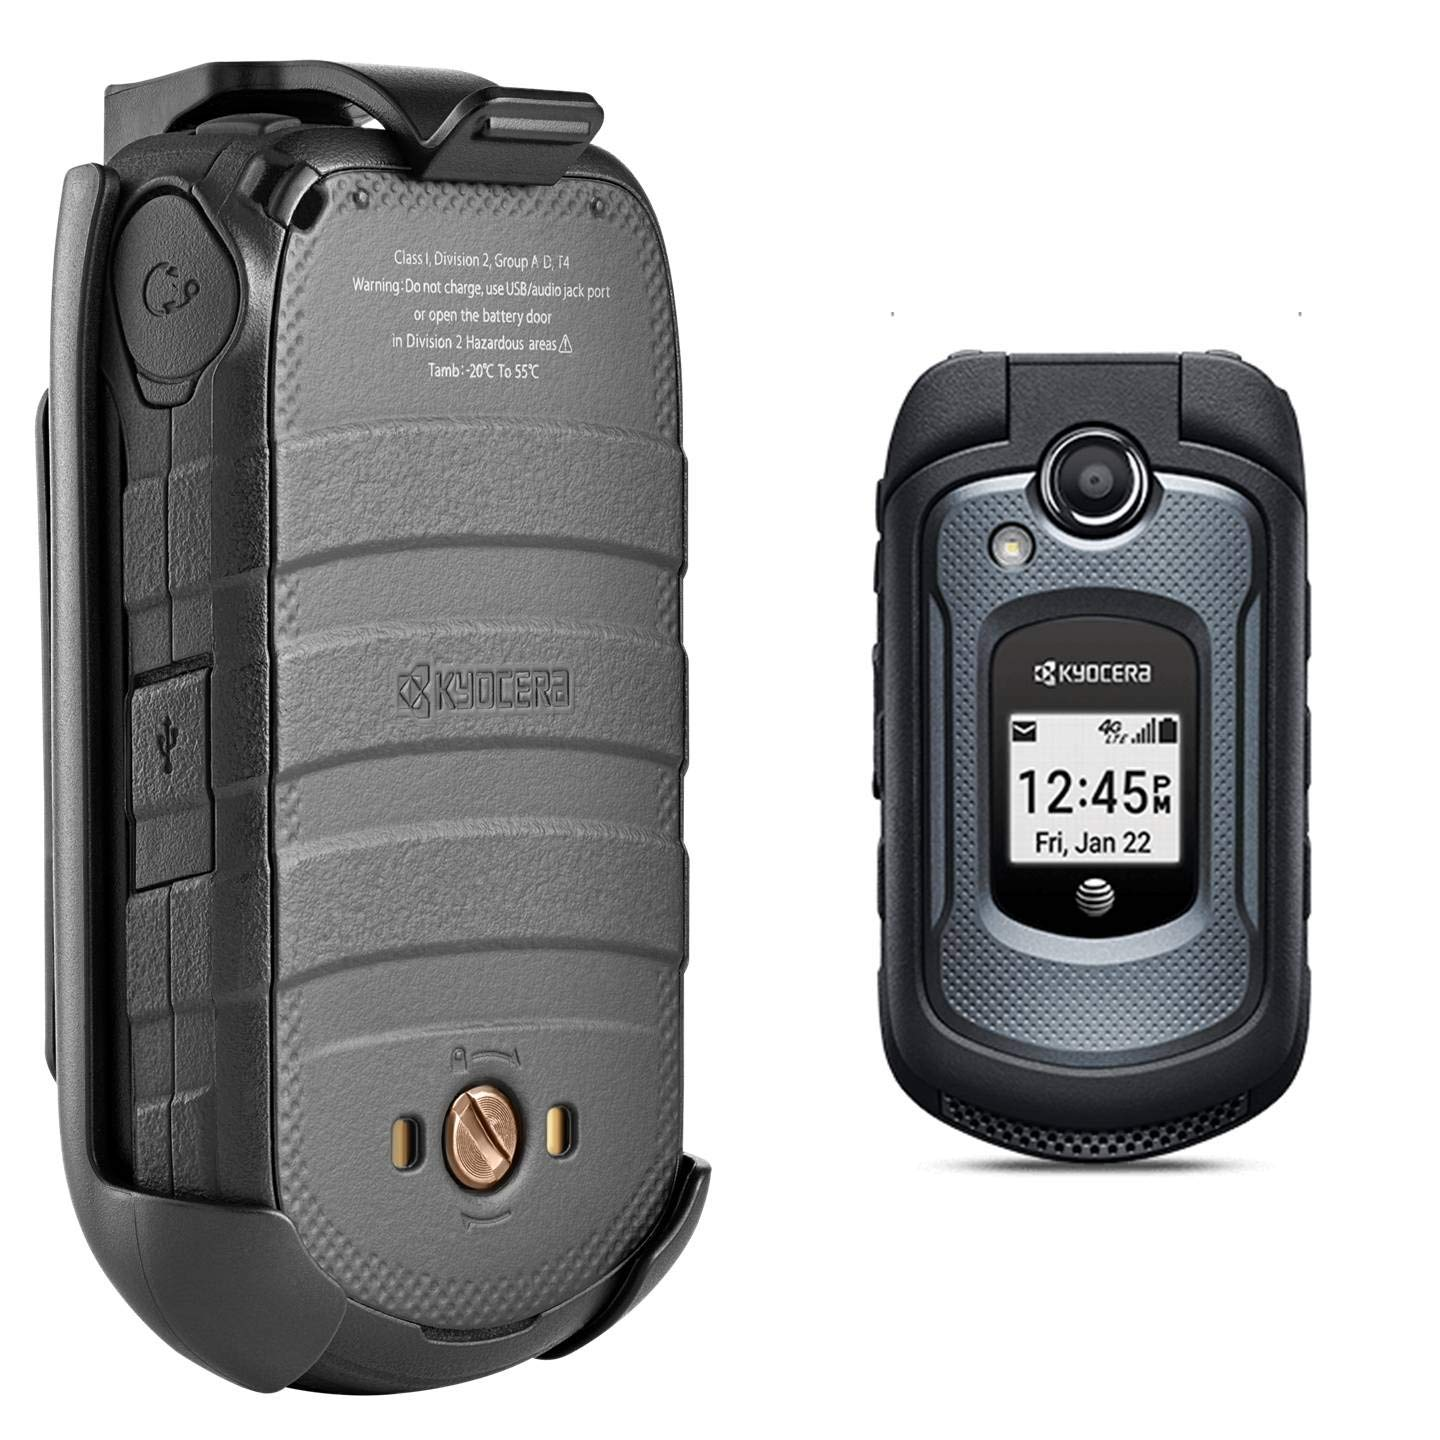 Kyocera DuraXE 4G LTE Rugged Mobile Flip-phone Unlocked for GSM